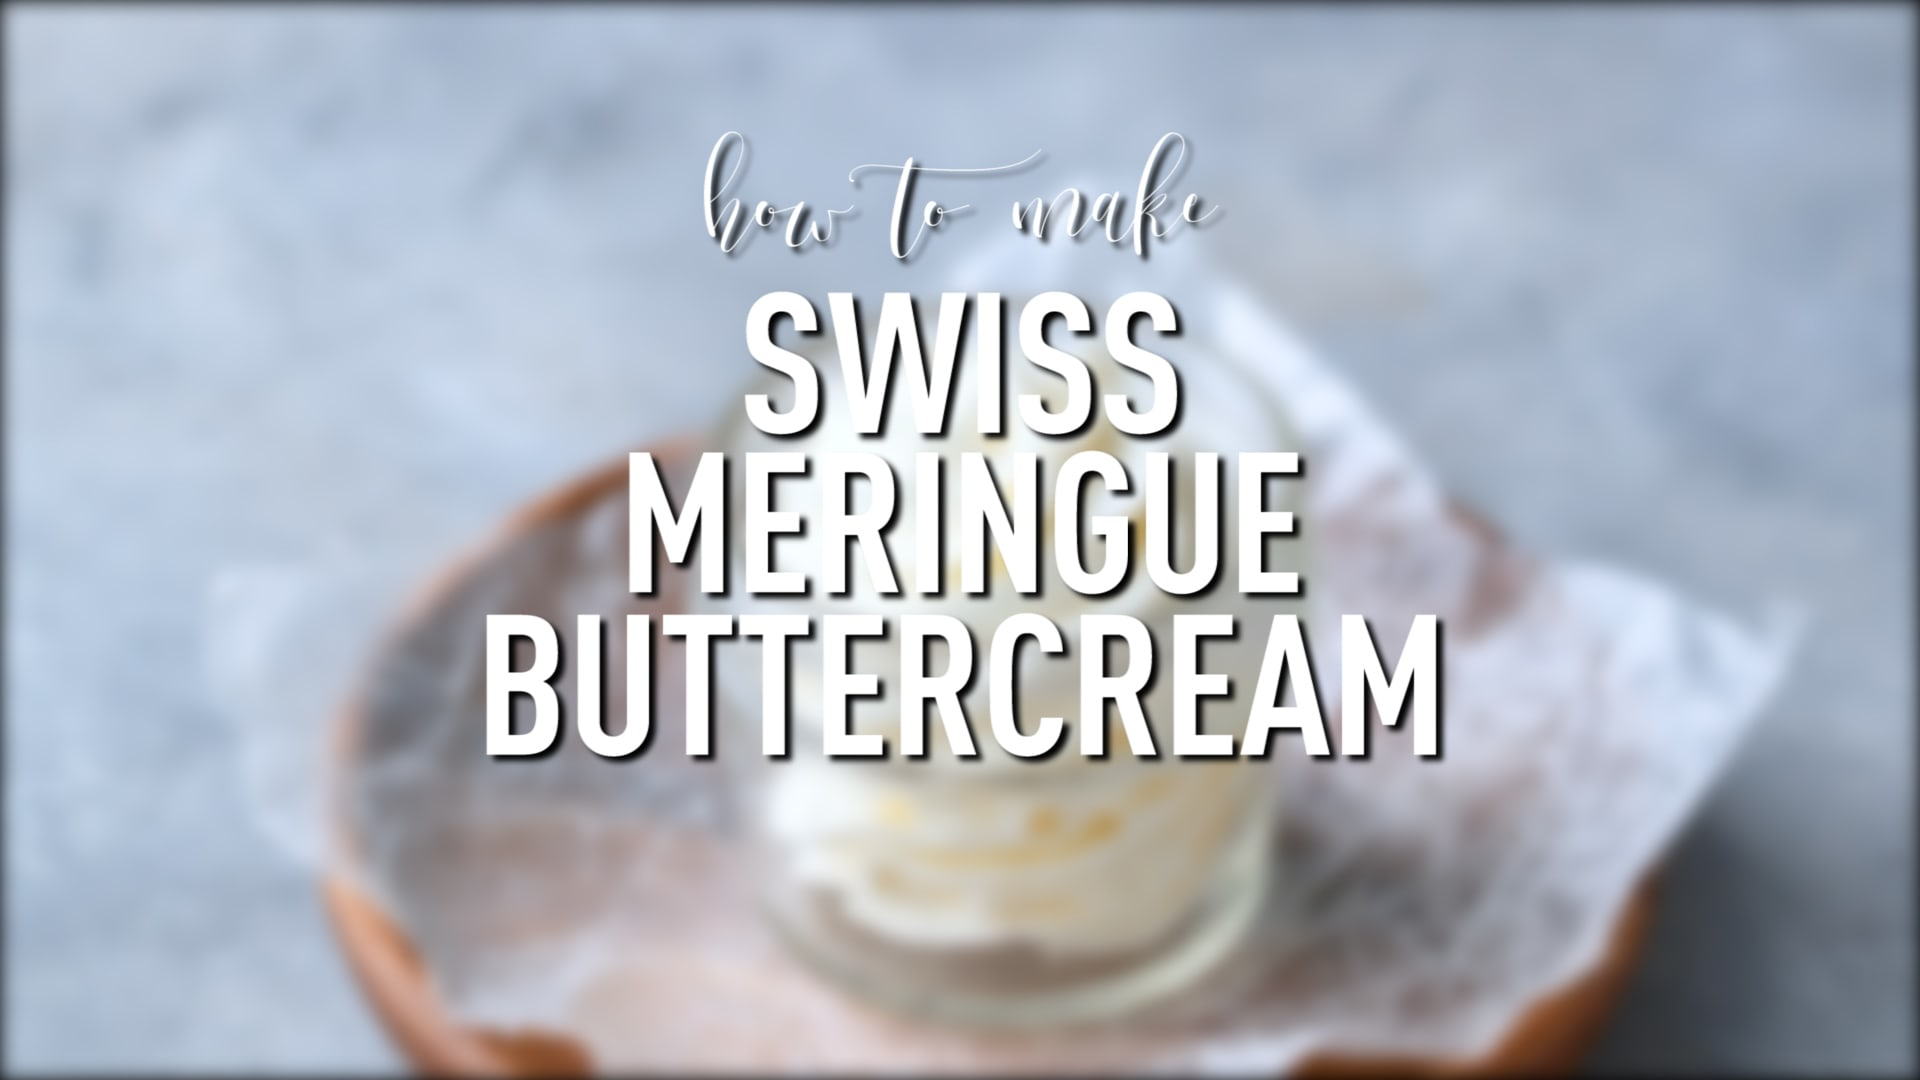 Everything you ever needed to know about Swiss Meringue Buttercream ...